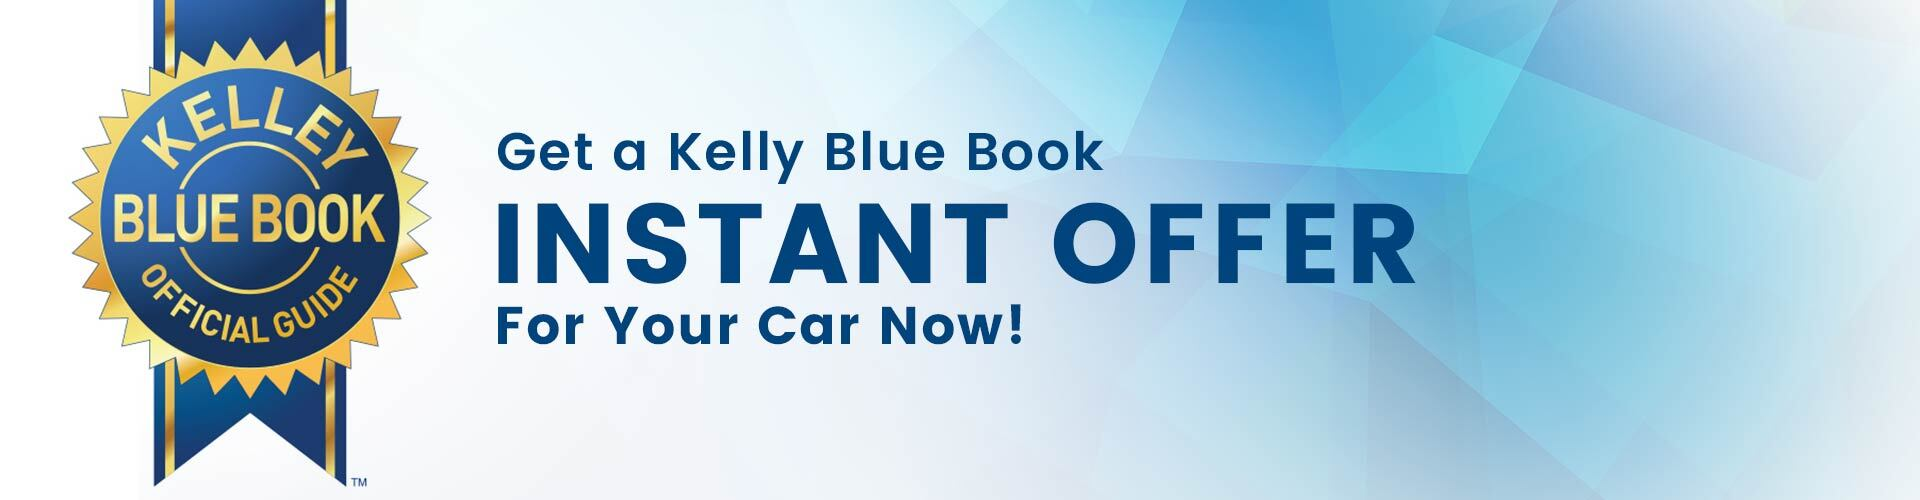 Kelly Blue Book Instant Cash Offer